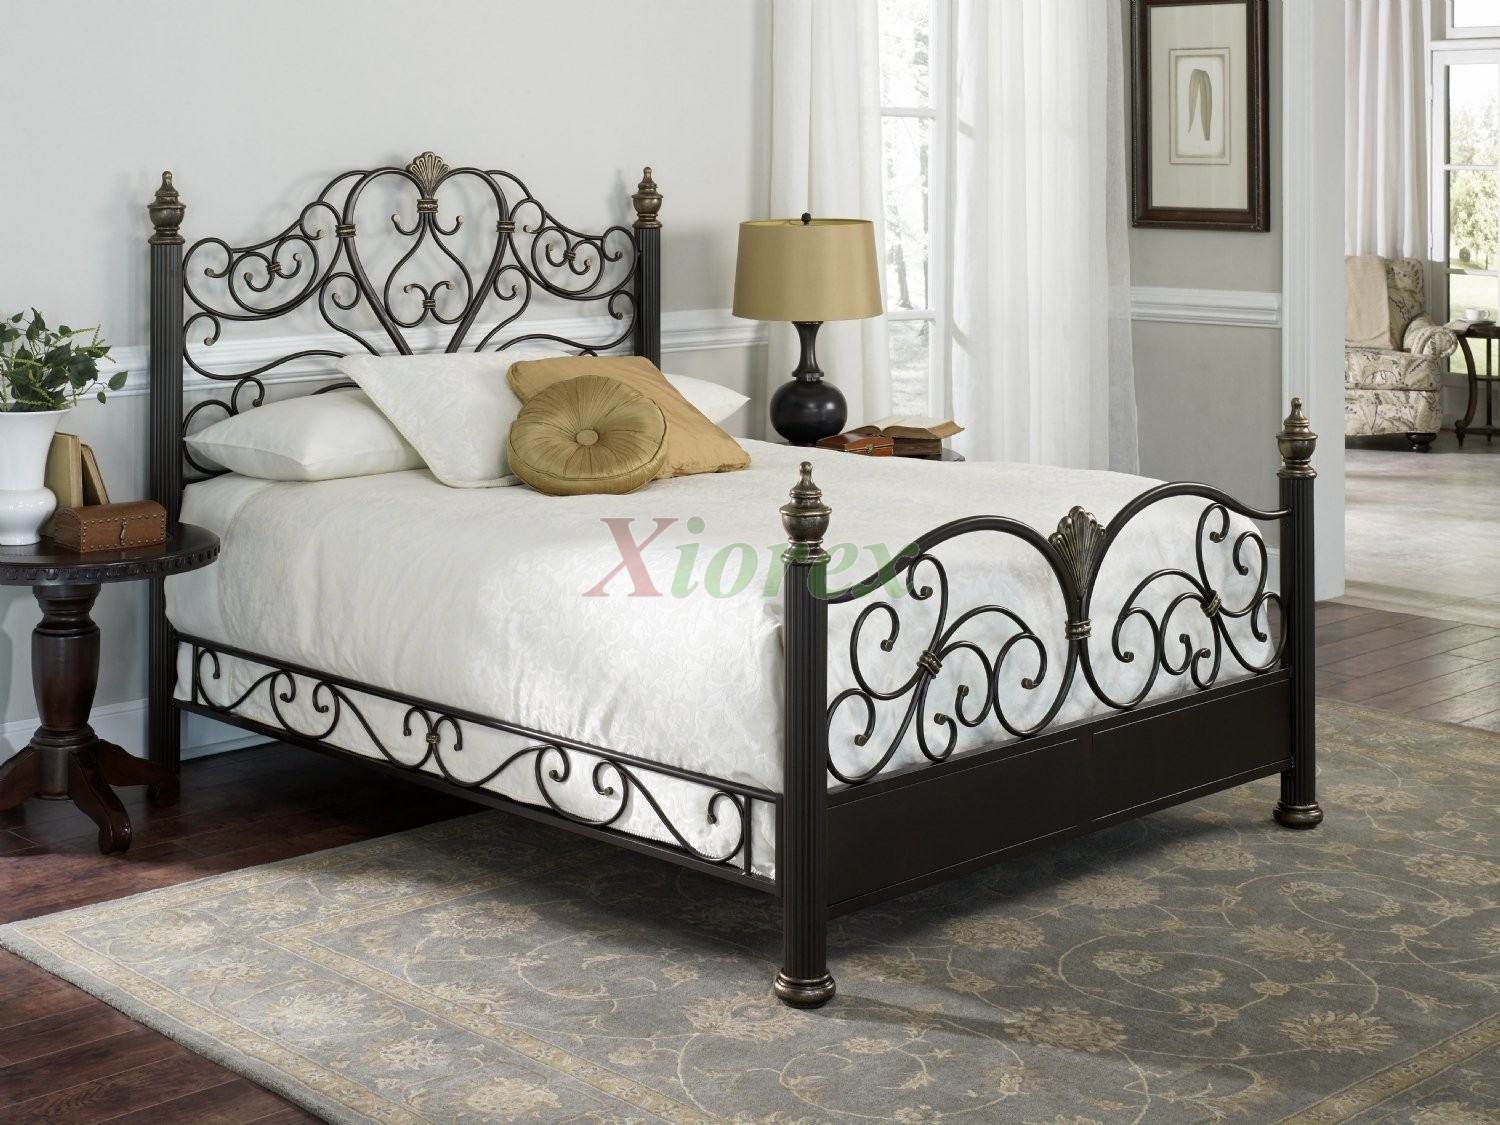 Steel Bed Frames Queen Metal Bed Frames Queen Size Extra: Elegance Bed -Poster Bed In Gilded Truffle Finish By